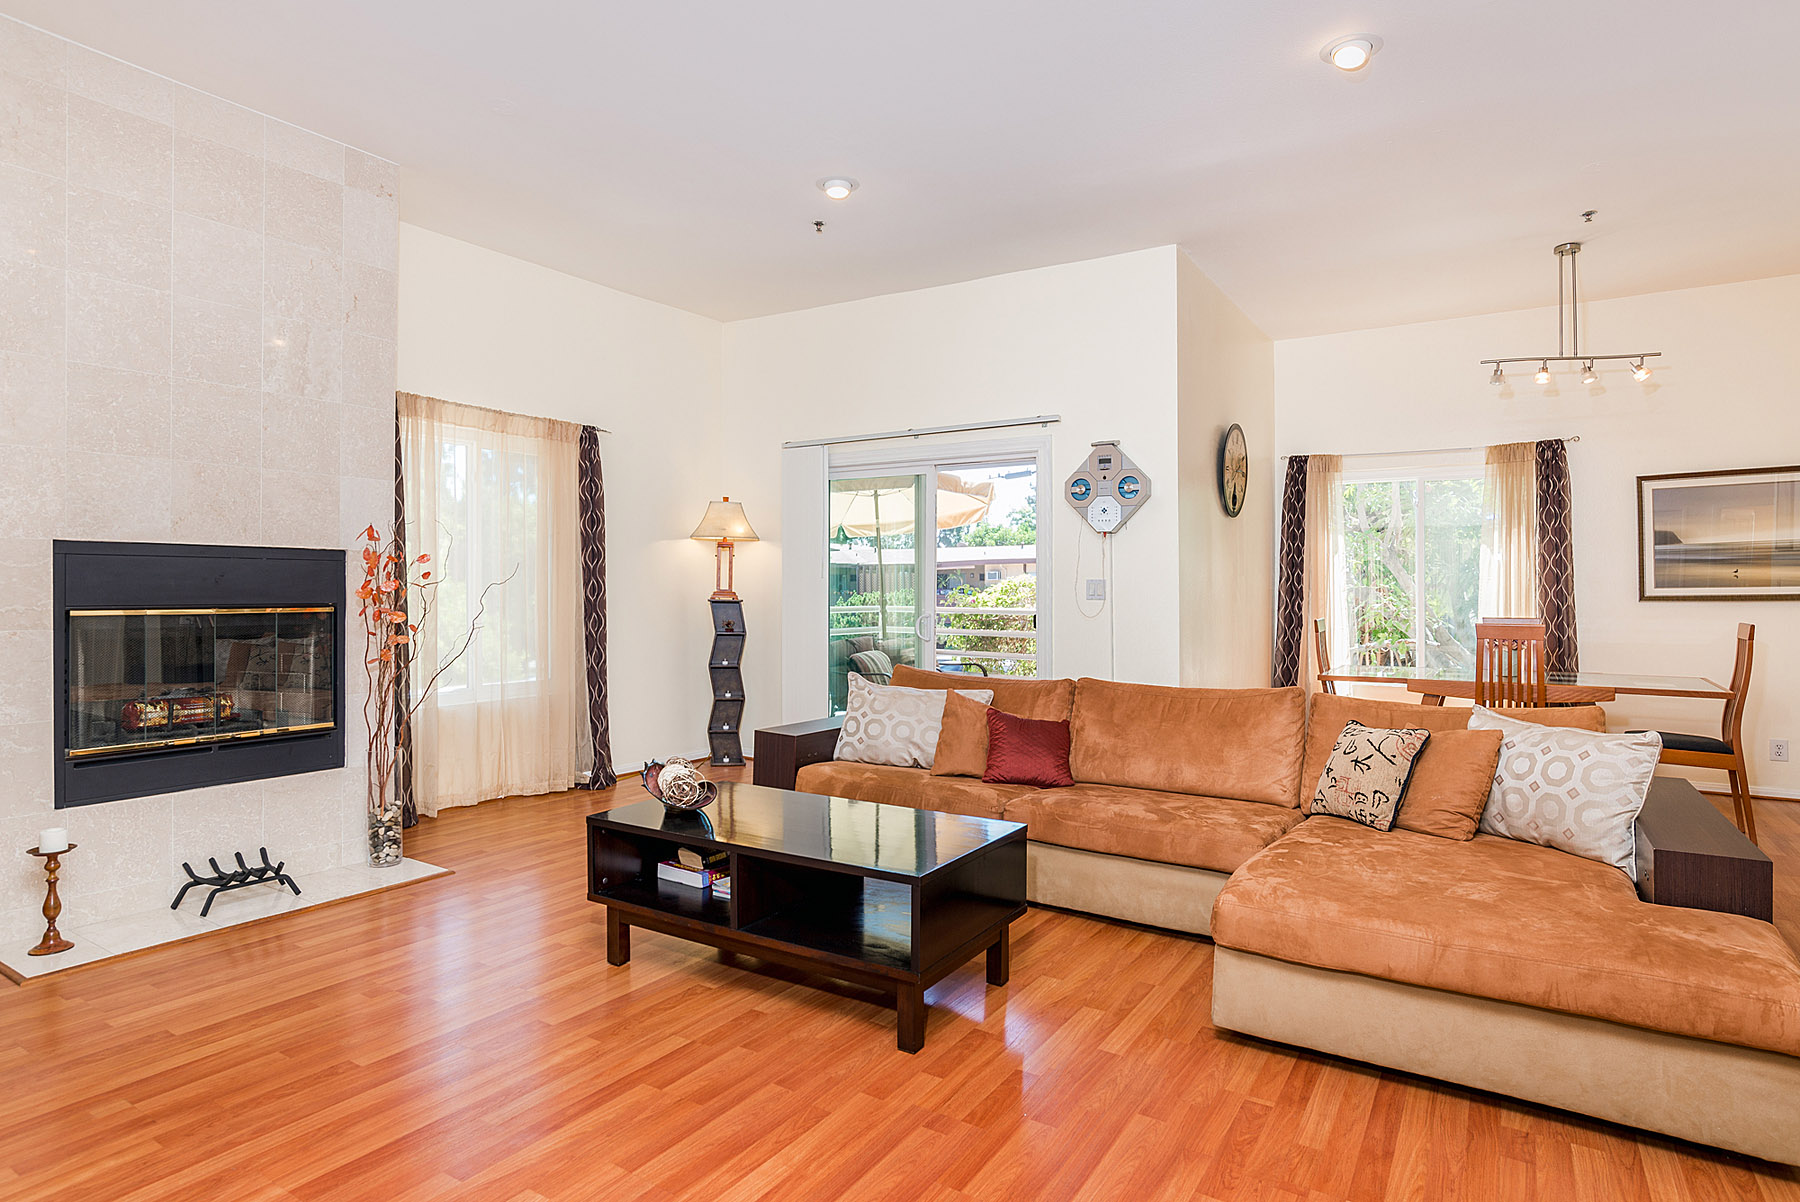 Open and spacious living area, with cozy fireplace.